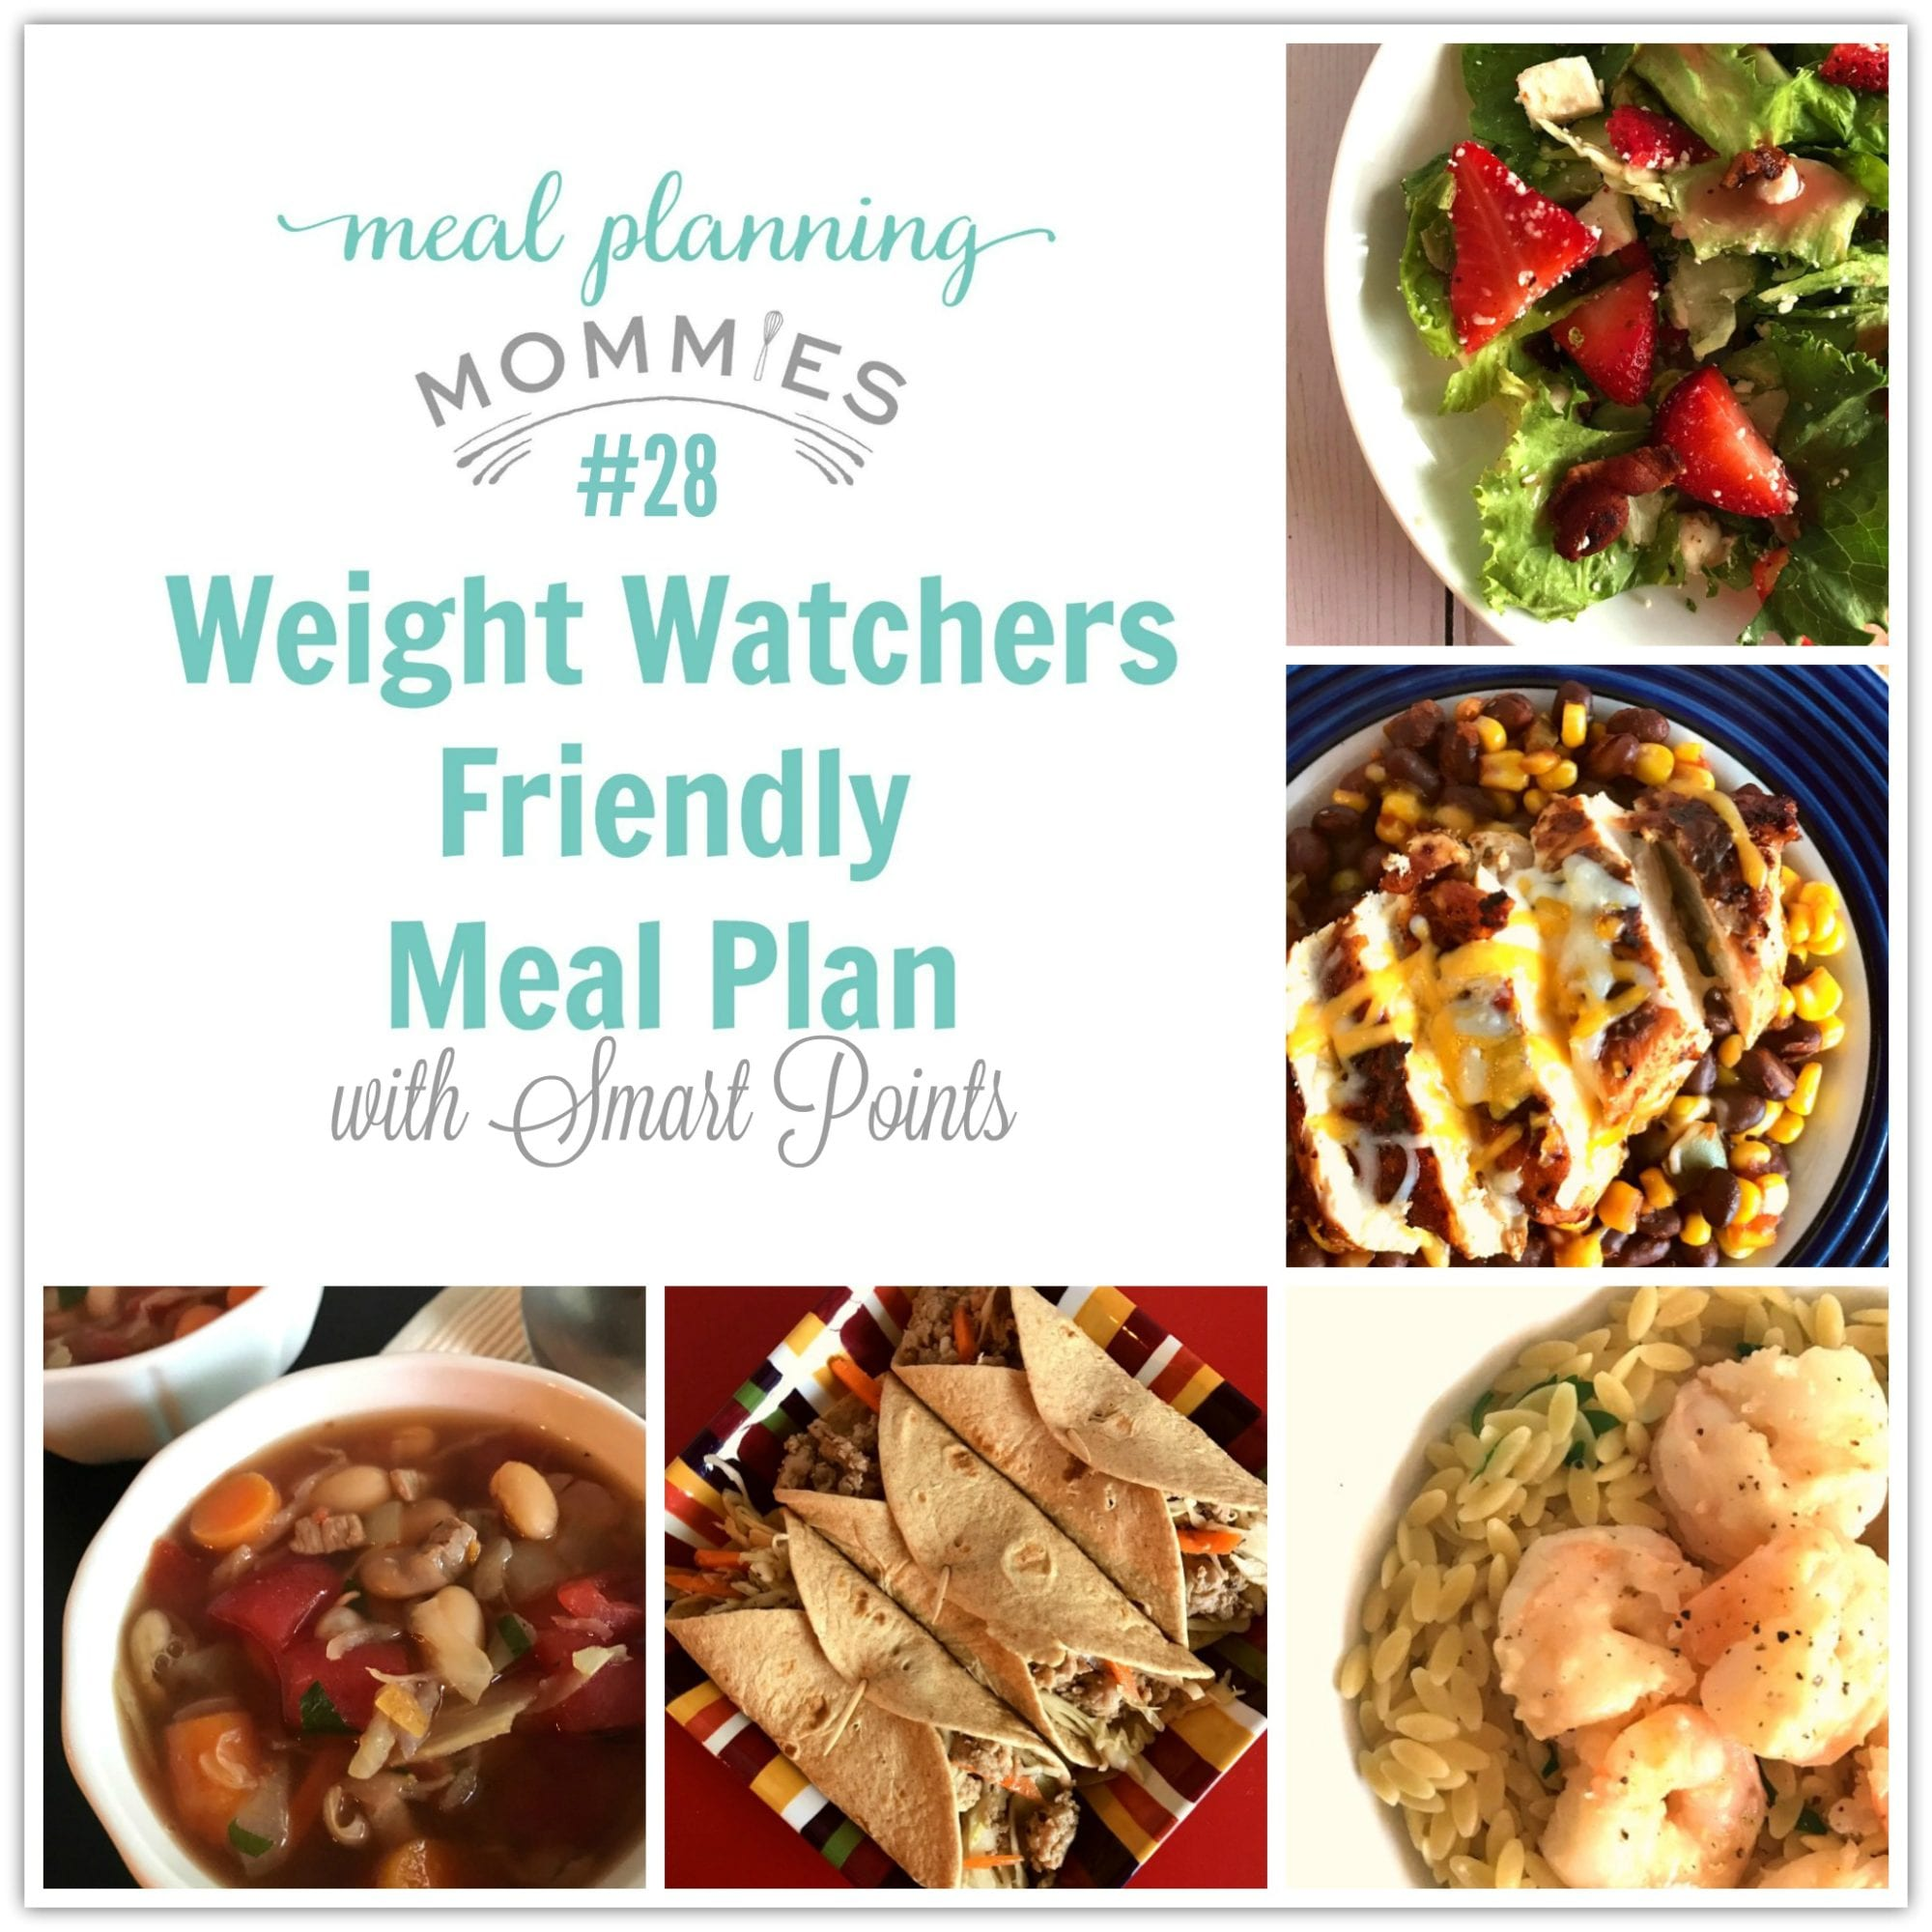 Weight Watchers Friendly Meal Plan 28 With Freestyle